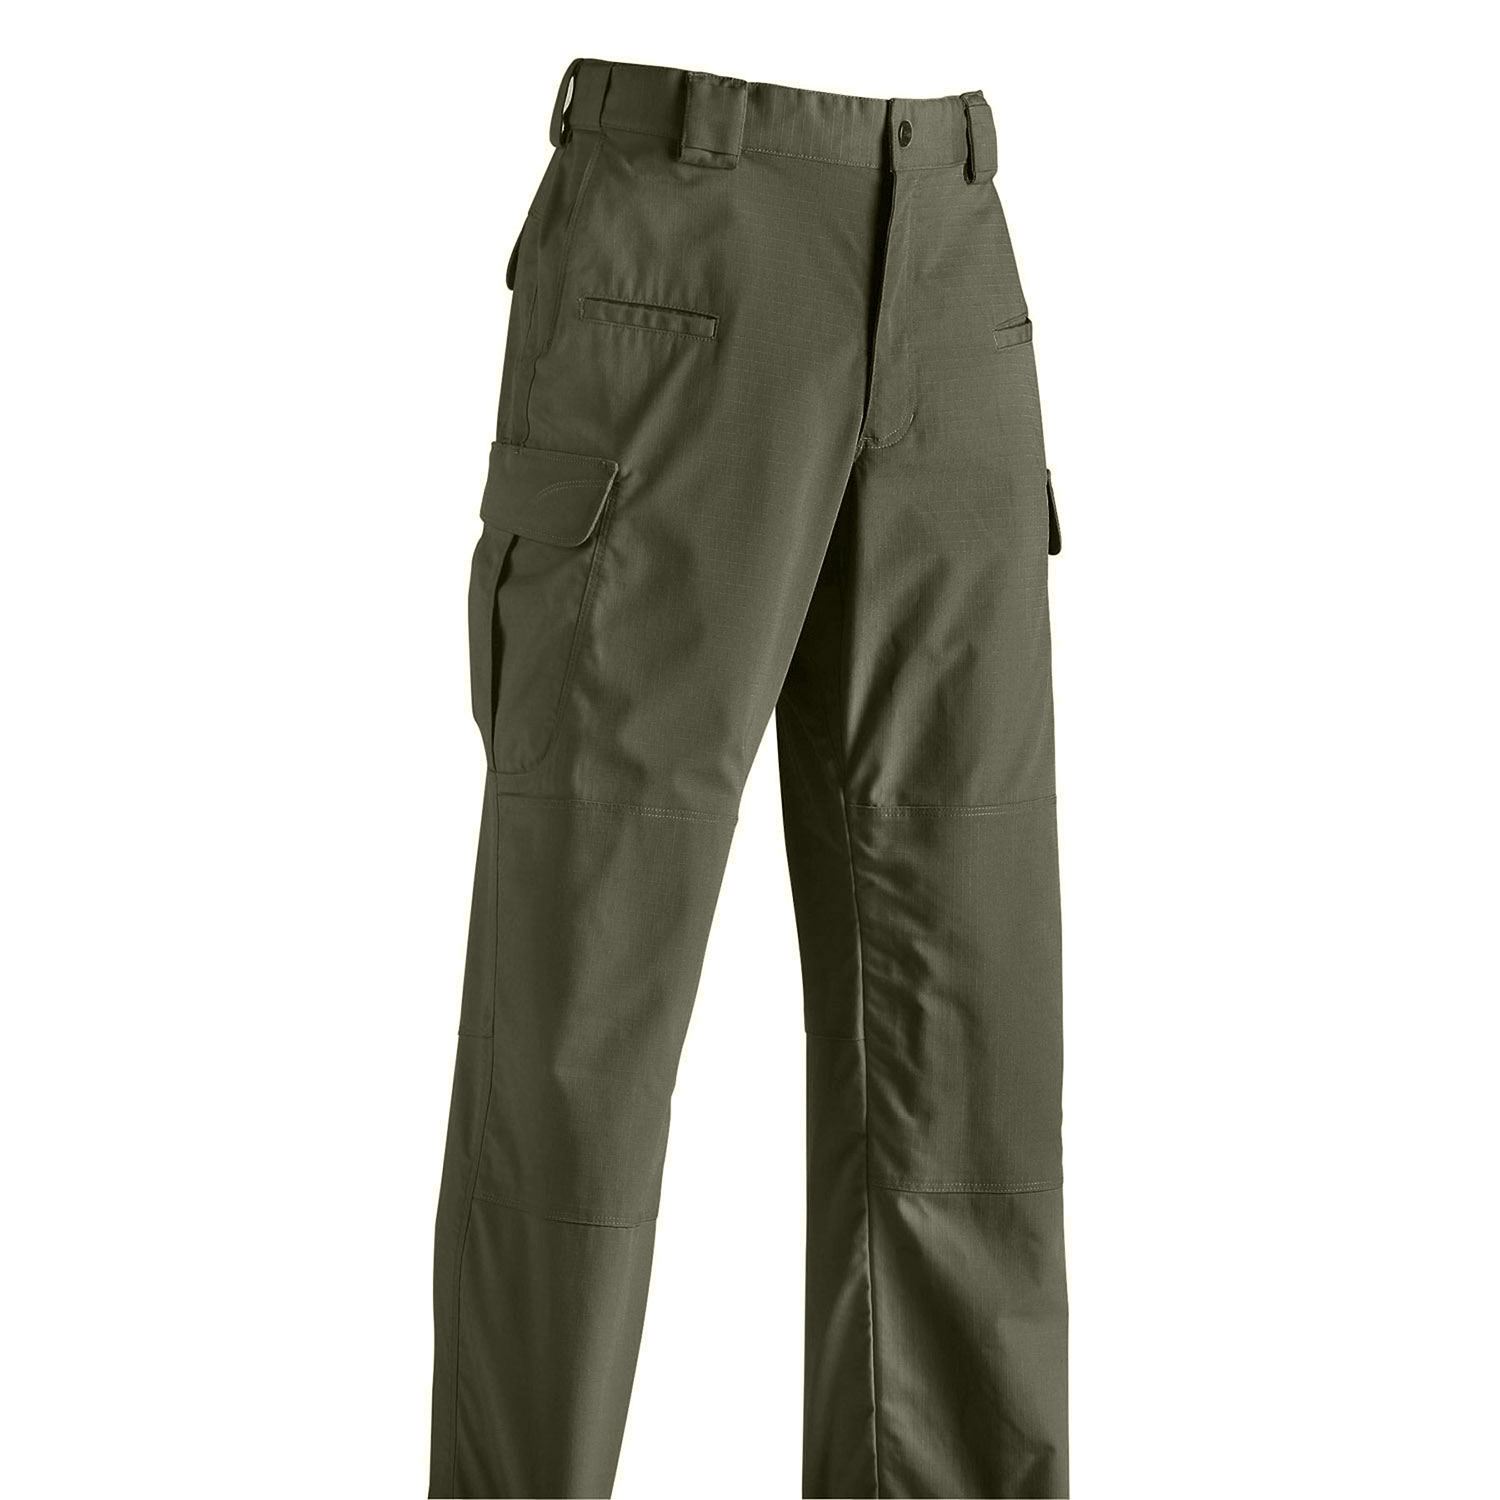 NWT 5.11 Men/'s Stryke Pants Charcoal Gray Variety of Sizes